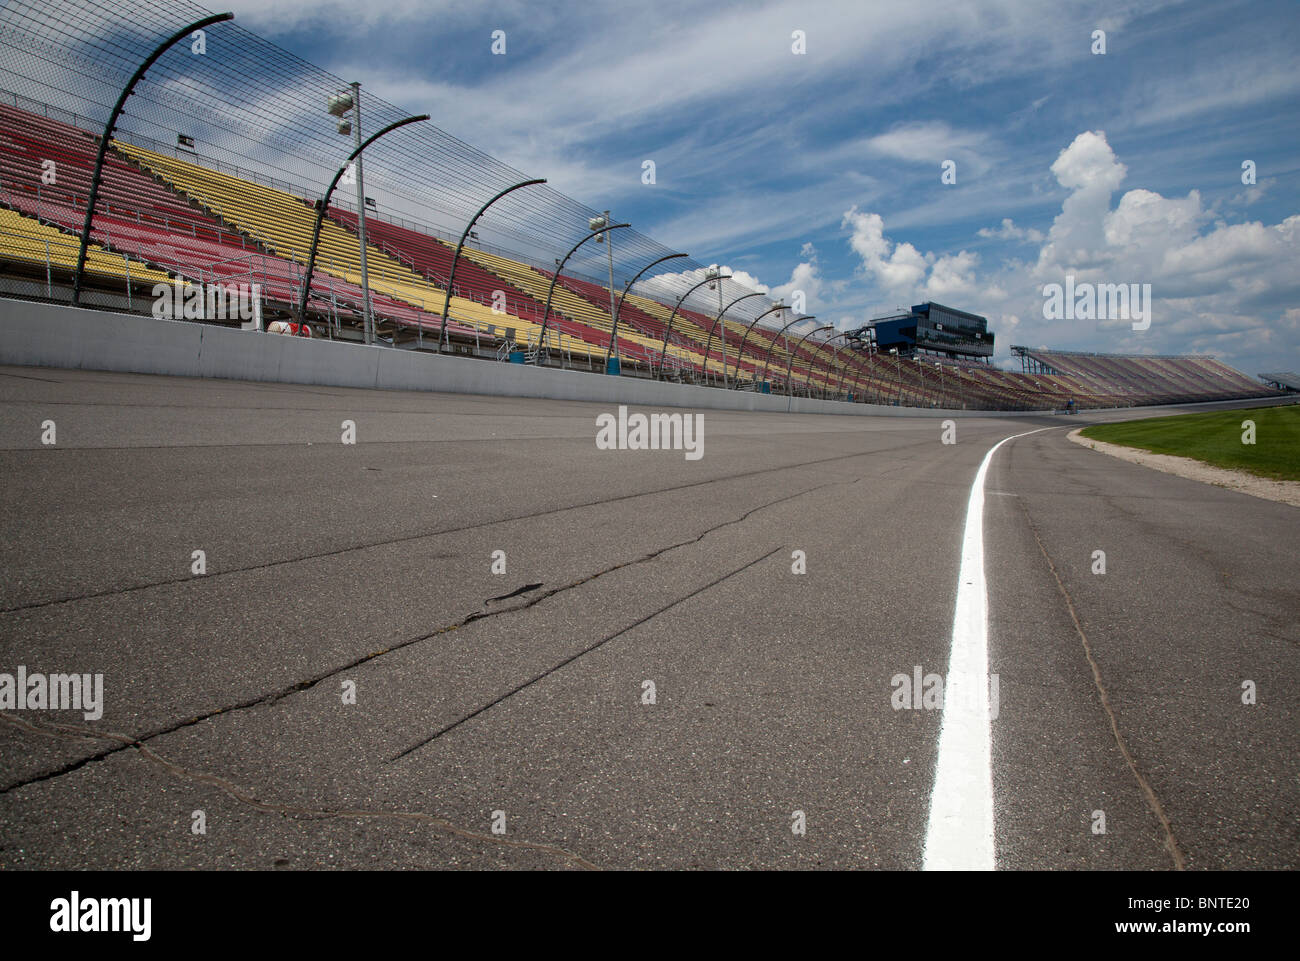 Michigan International Speedway - Stock Image